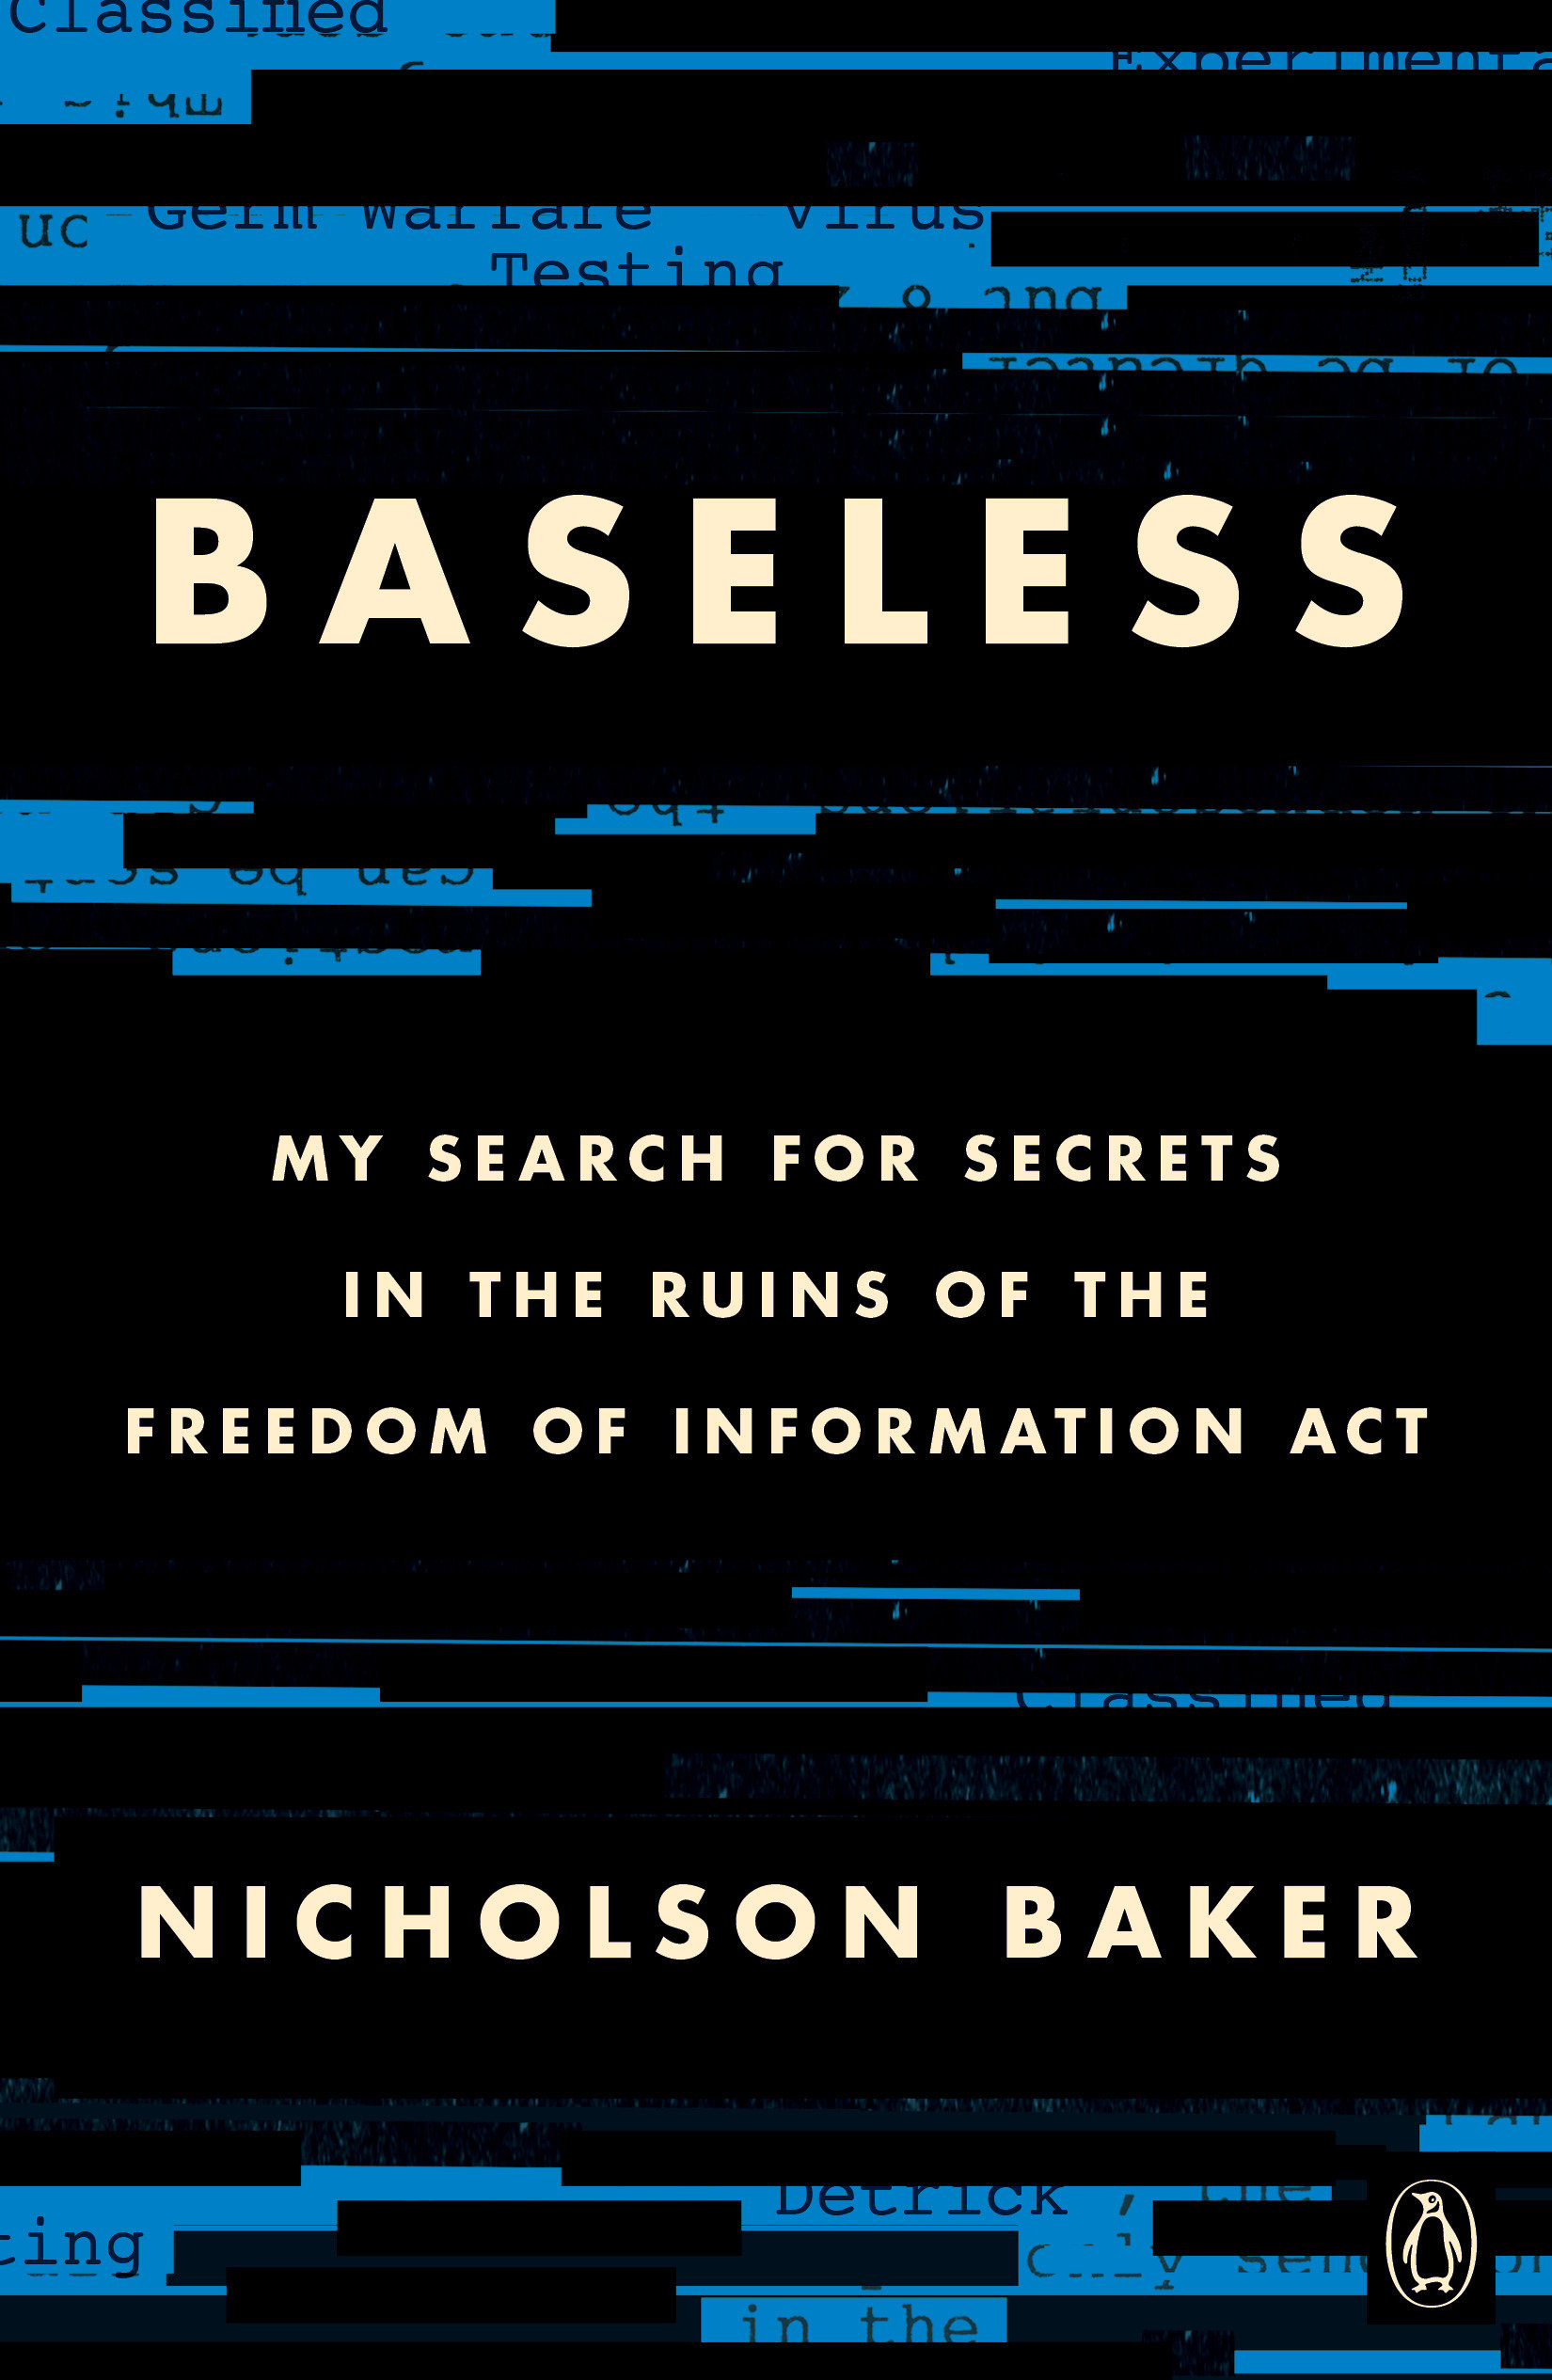 Baseless My Search for Secrets in the Ruins of the Freedom of Information Act